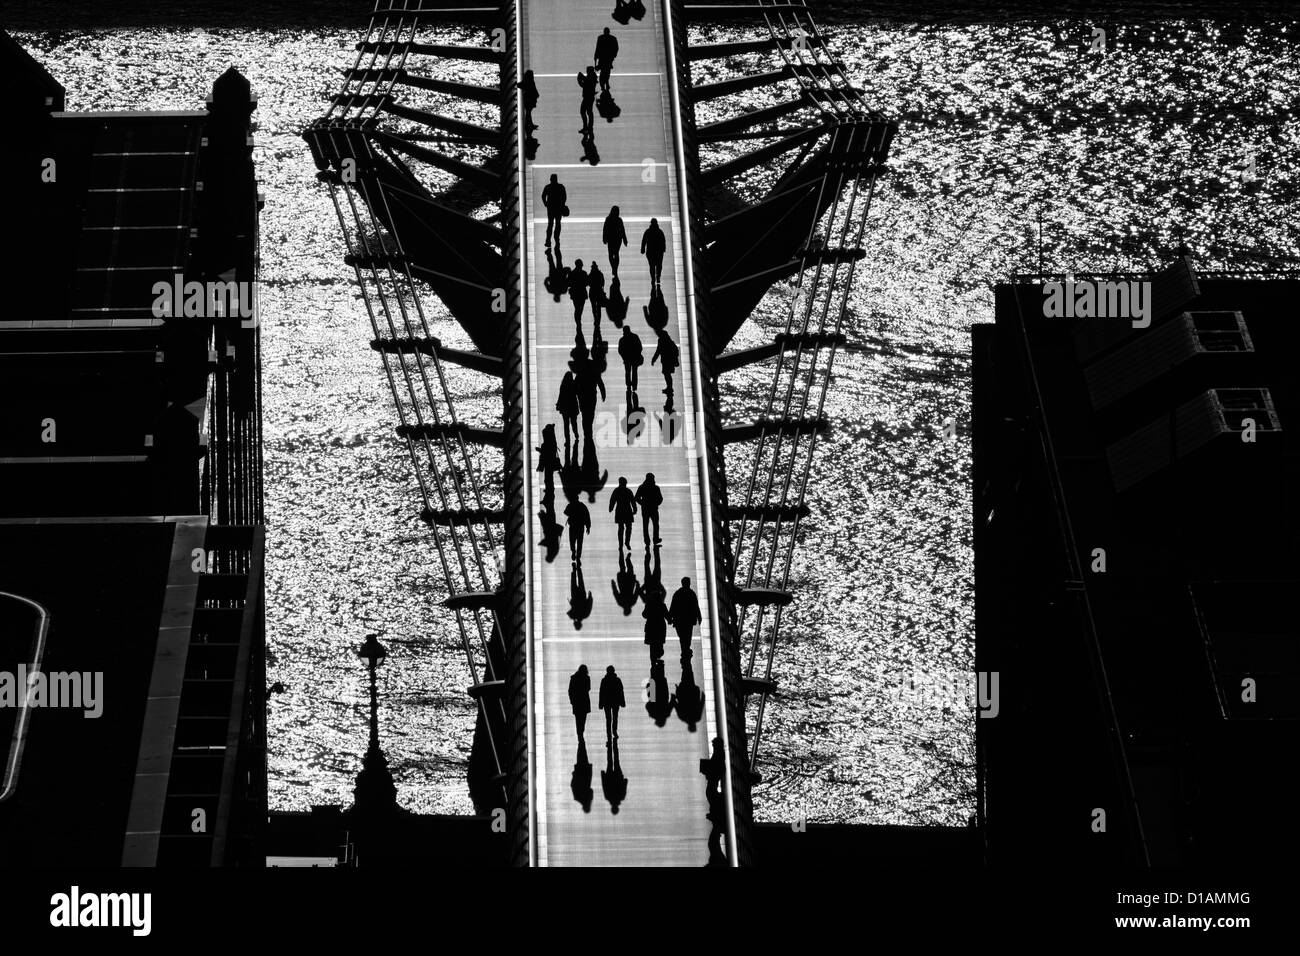 Aerial view of pedestrians walking across the Millennium Bridge, London, UK - Stock Image